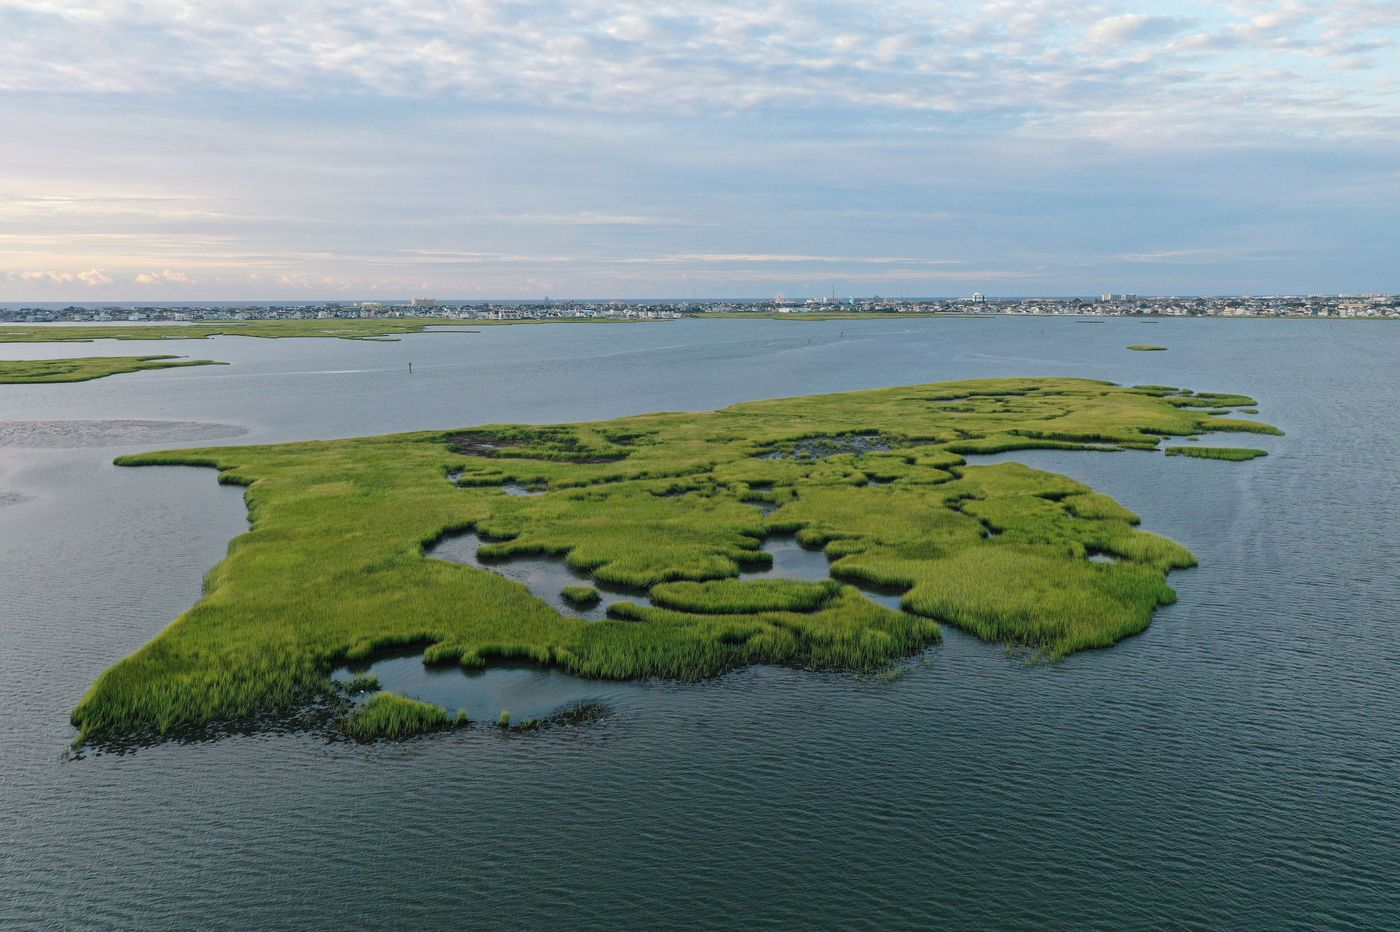 A private island is being sold for $200,000 at the Jersey Shore, and we have so many questions